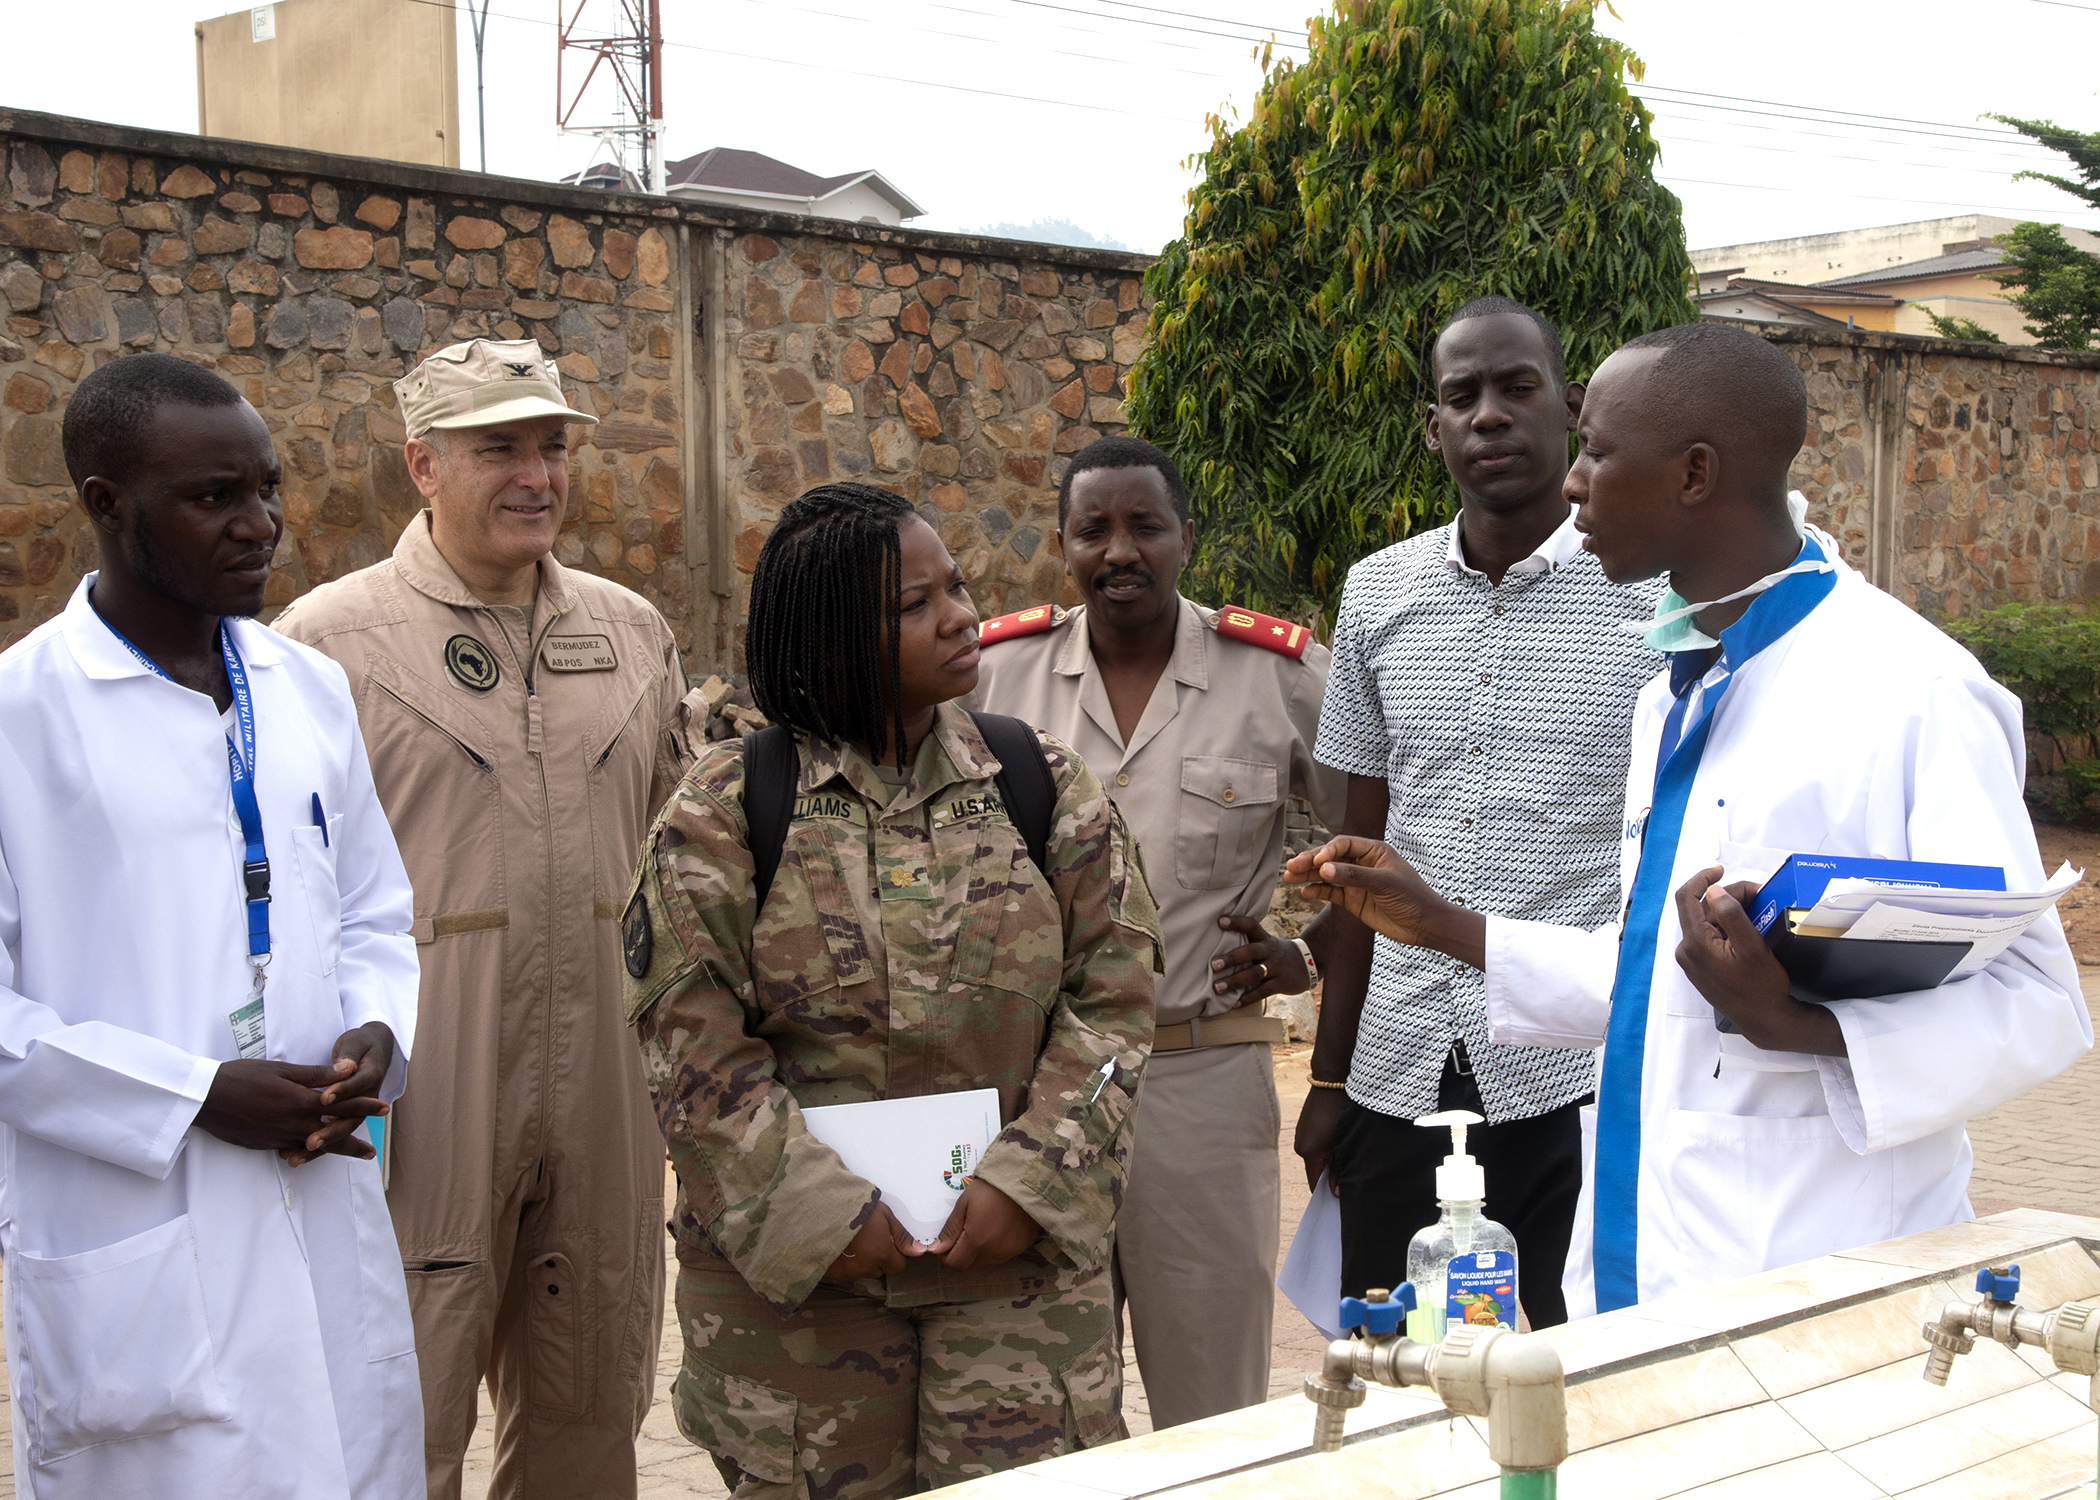 U.S. Air Force Col. James Bermudez, center left, force surgeon assigned to Combined Joint Task Force-Horn of Africa (CJTF-HOA), and U.S. Army Maj. Lakesha Williams, center, public health nurse for the 403rd Civil Affairs Battalion, assigned to CJTF-HOA, speak with Simbaraizye Deo, a doctor and chief of emergency services at Kamenge Military Hospital, as he demonstrates one of the hand washing stations at the Kamenge Military Hospital, Bujumbura, Burundi, June 17, 2019. The 403rd Civil Affairs Battalion, CJTF-HOA, and military personnel and doctors from the Kamenge Military Hospital conducted an Ebola preparedness subject matter expert exchange as a precautionary measure for personnel near the border of the Democratic Republic of Congo. (U.S. Navy photo by Mass Communication Specialist 1st Class Nick Scott)